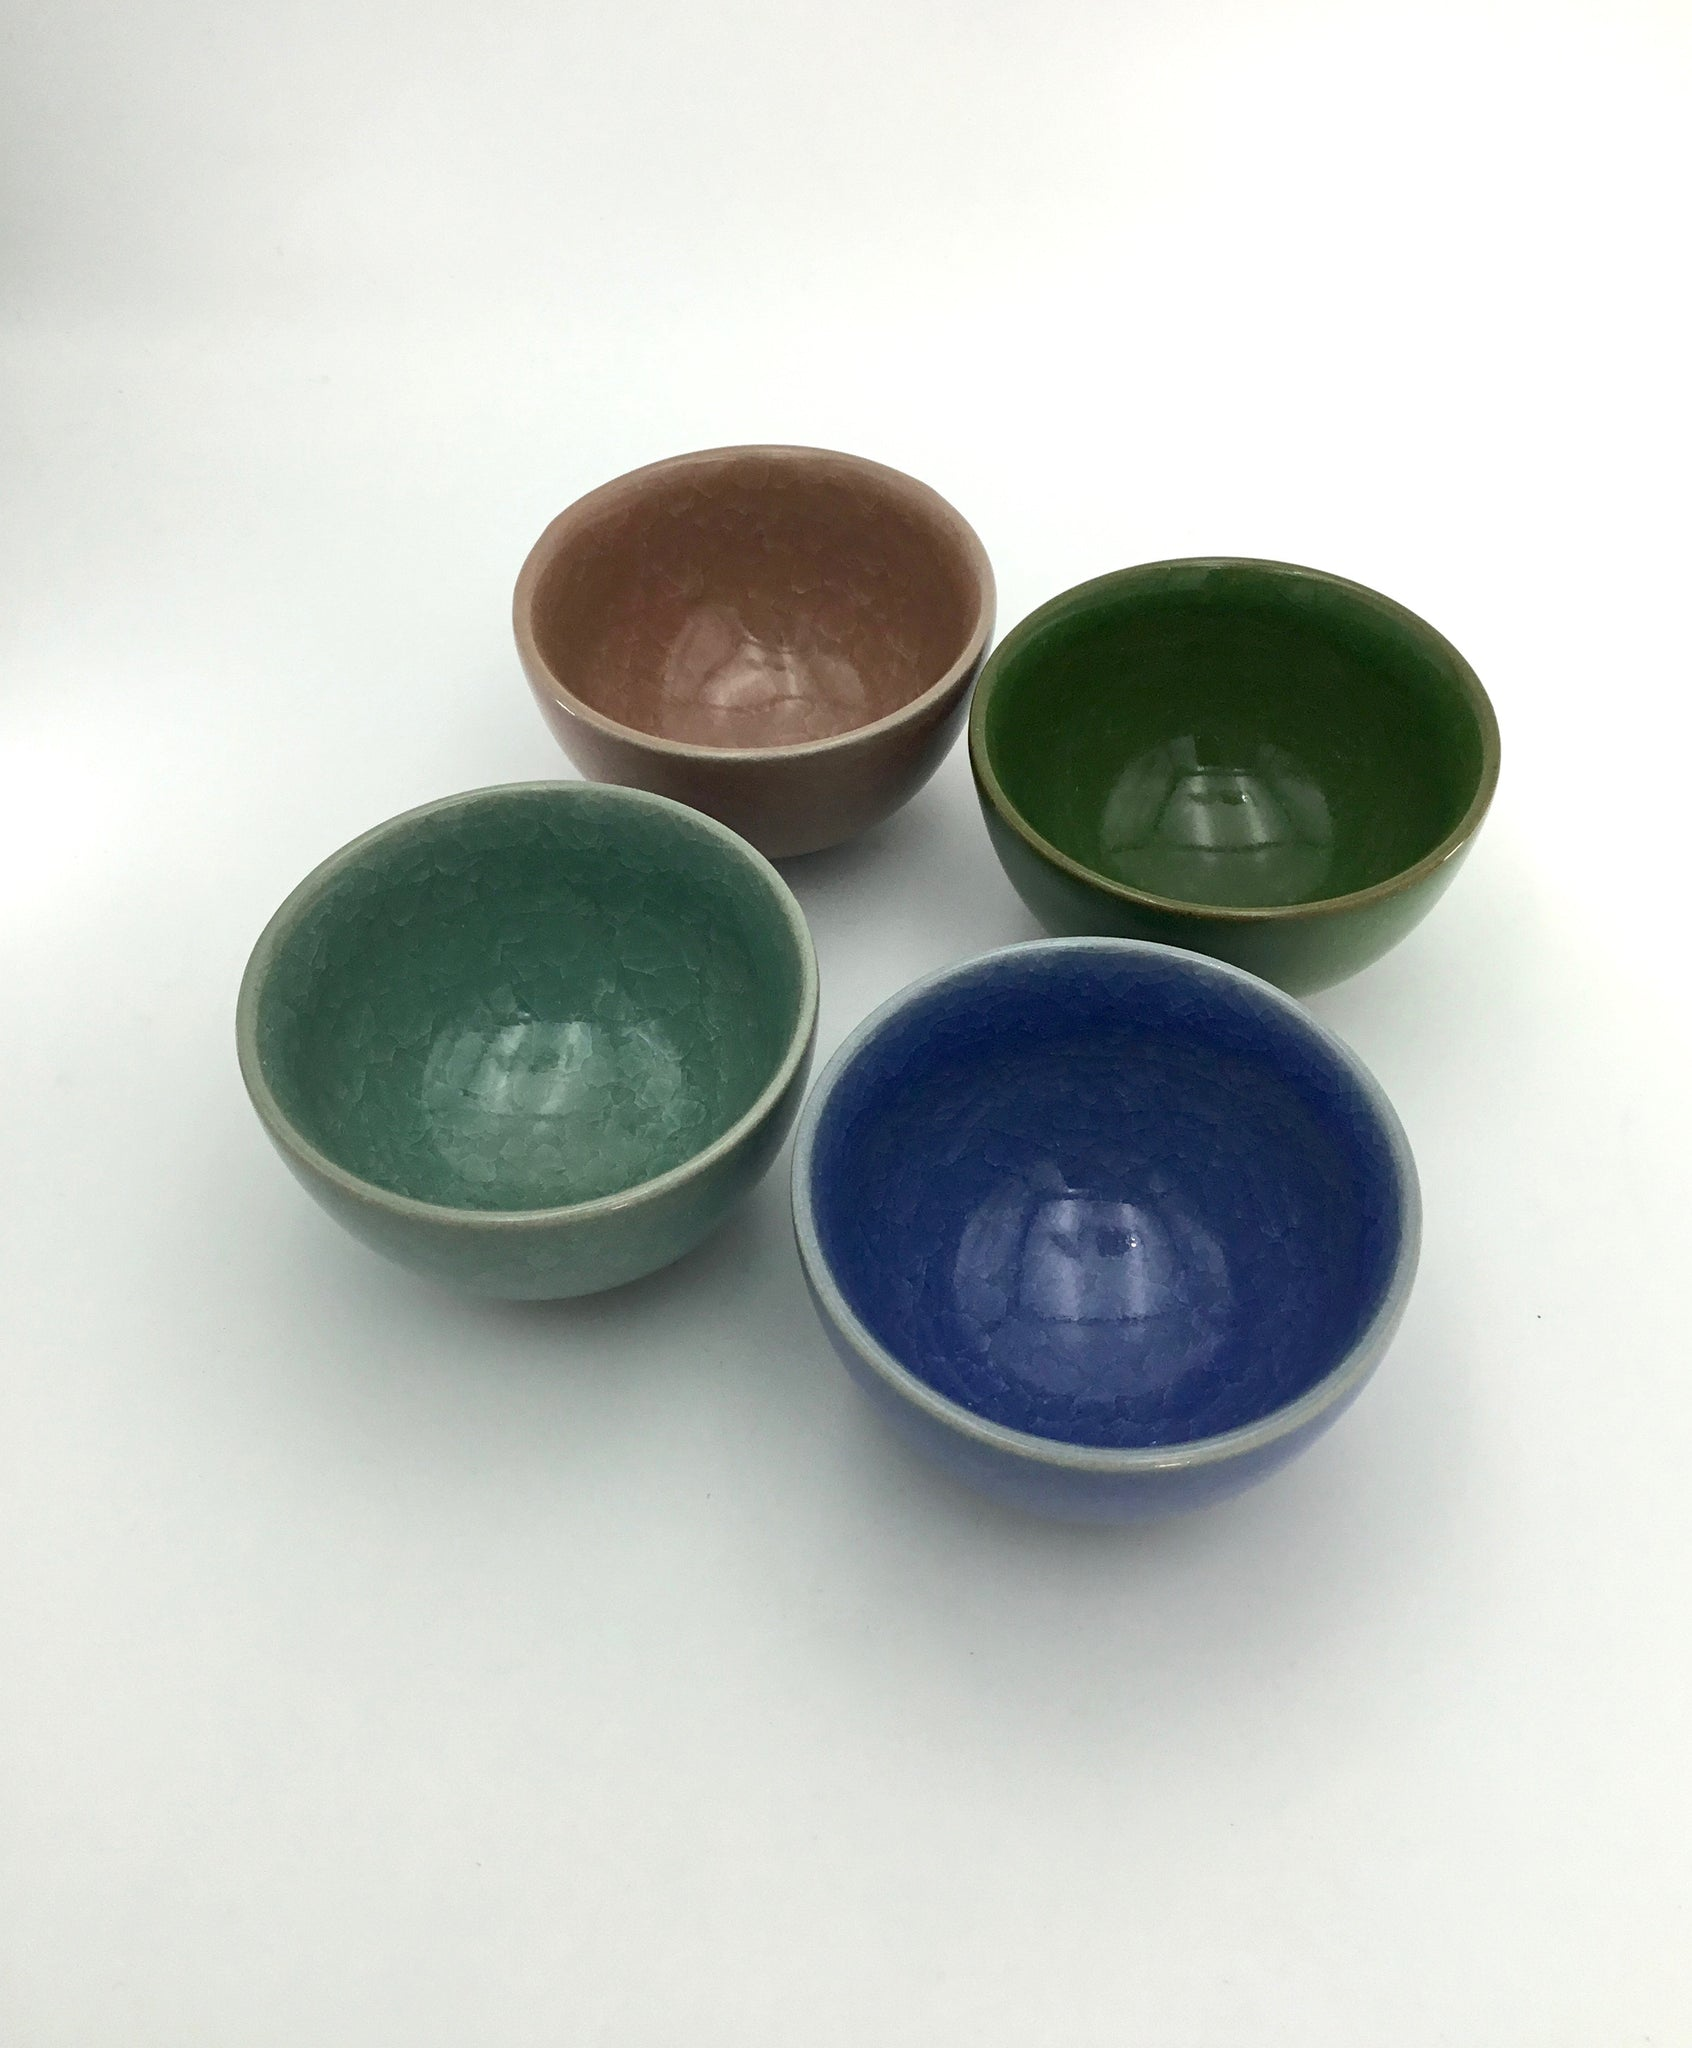 Miya Small Bowls / Set of 4